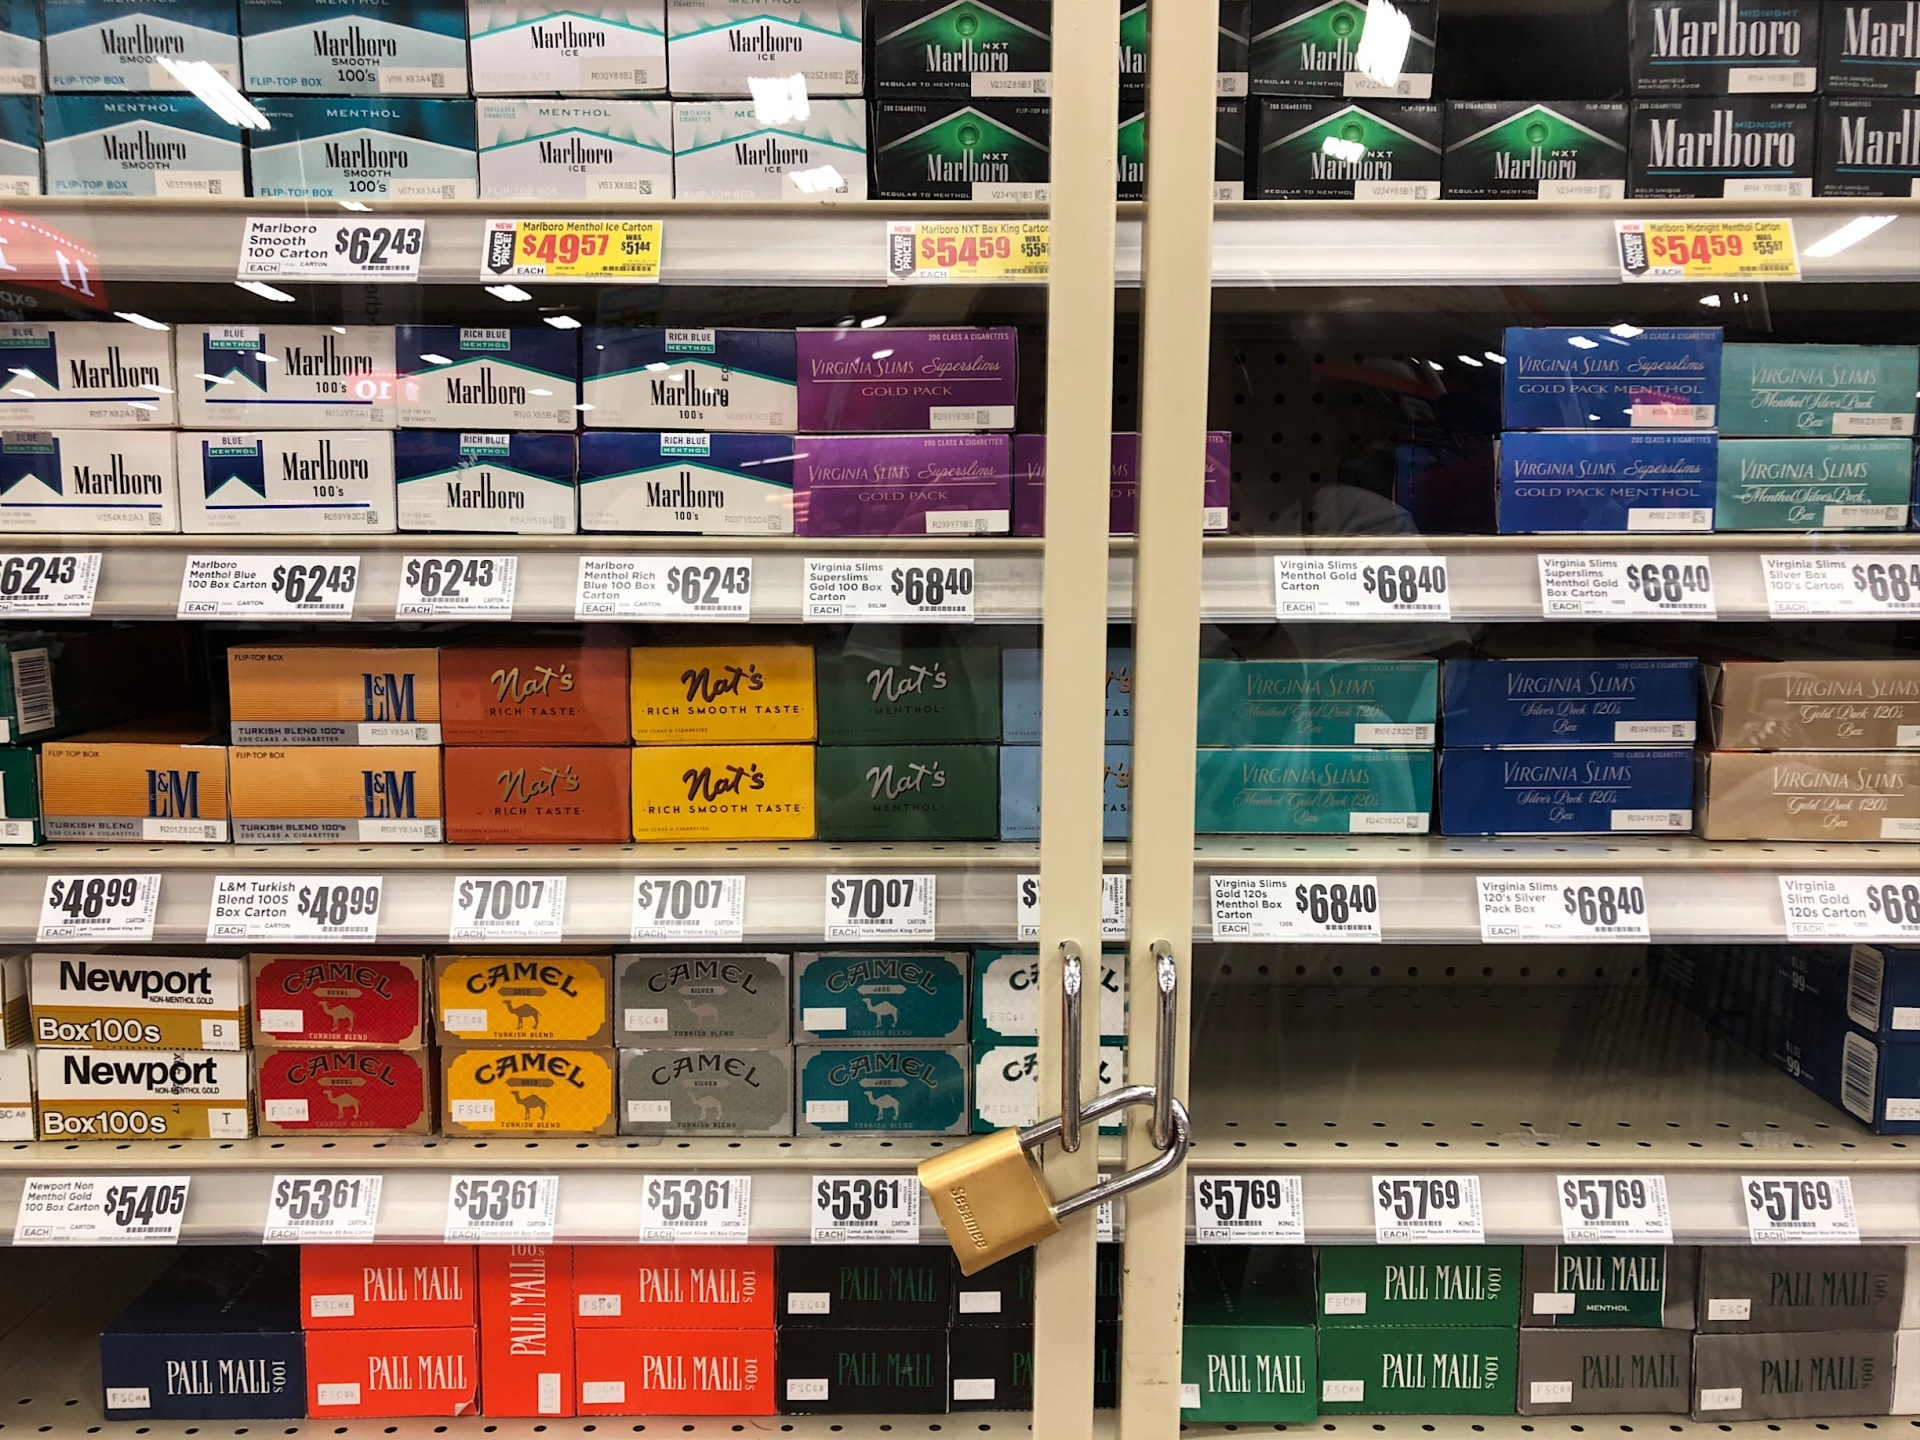 Multiple shelves of tobacco products (such as cigarettes) enclosed within a glass casing.